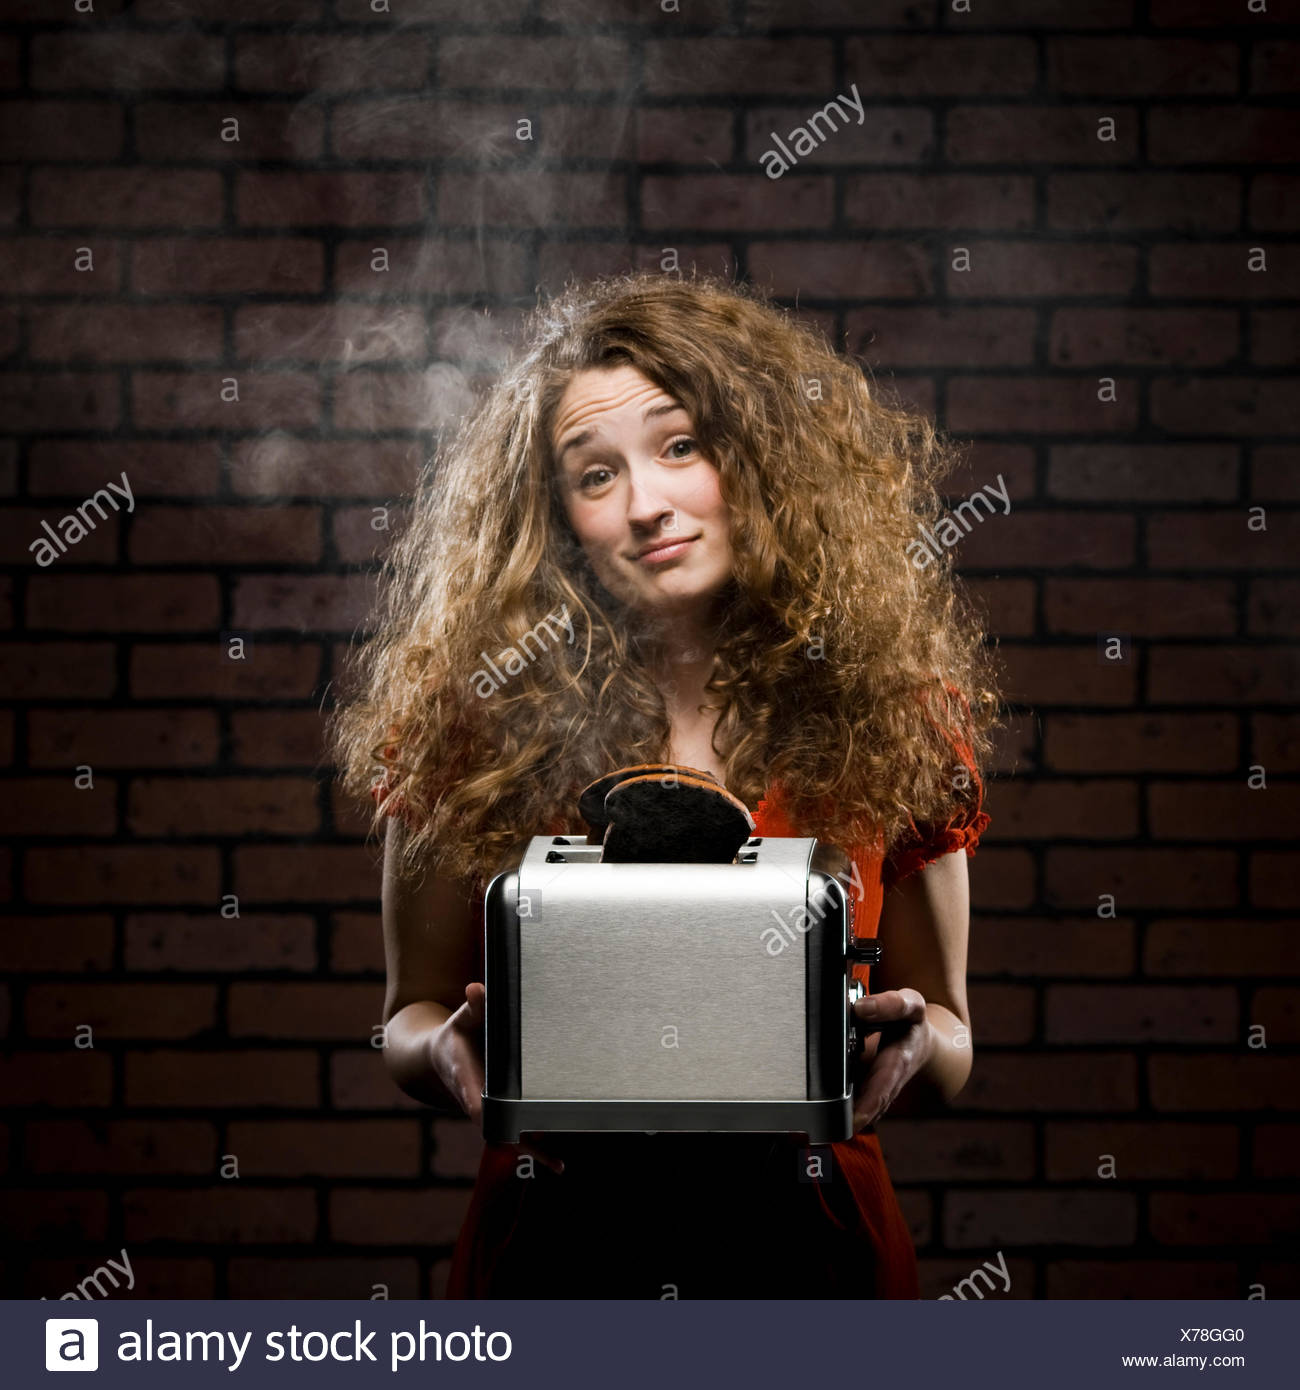 a waked girl with a toaster